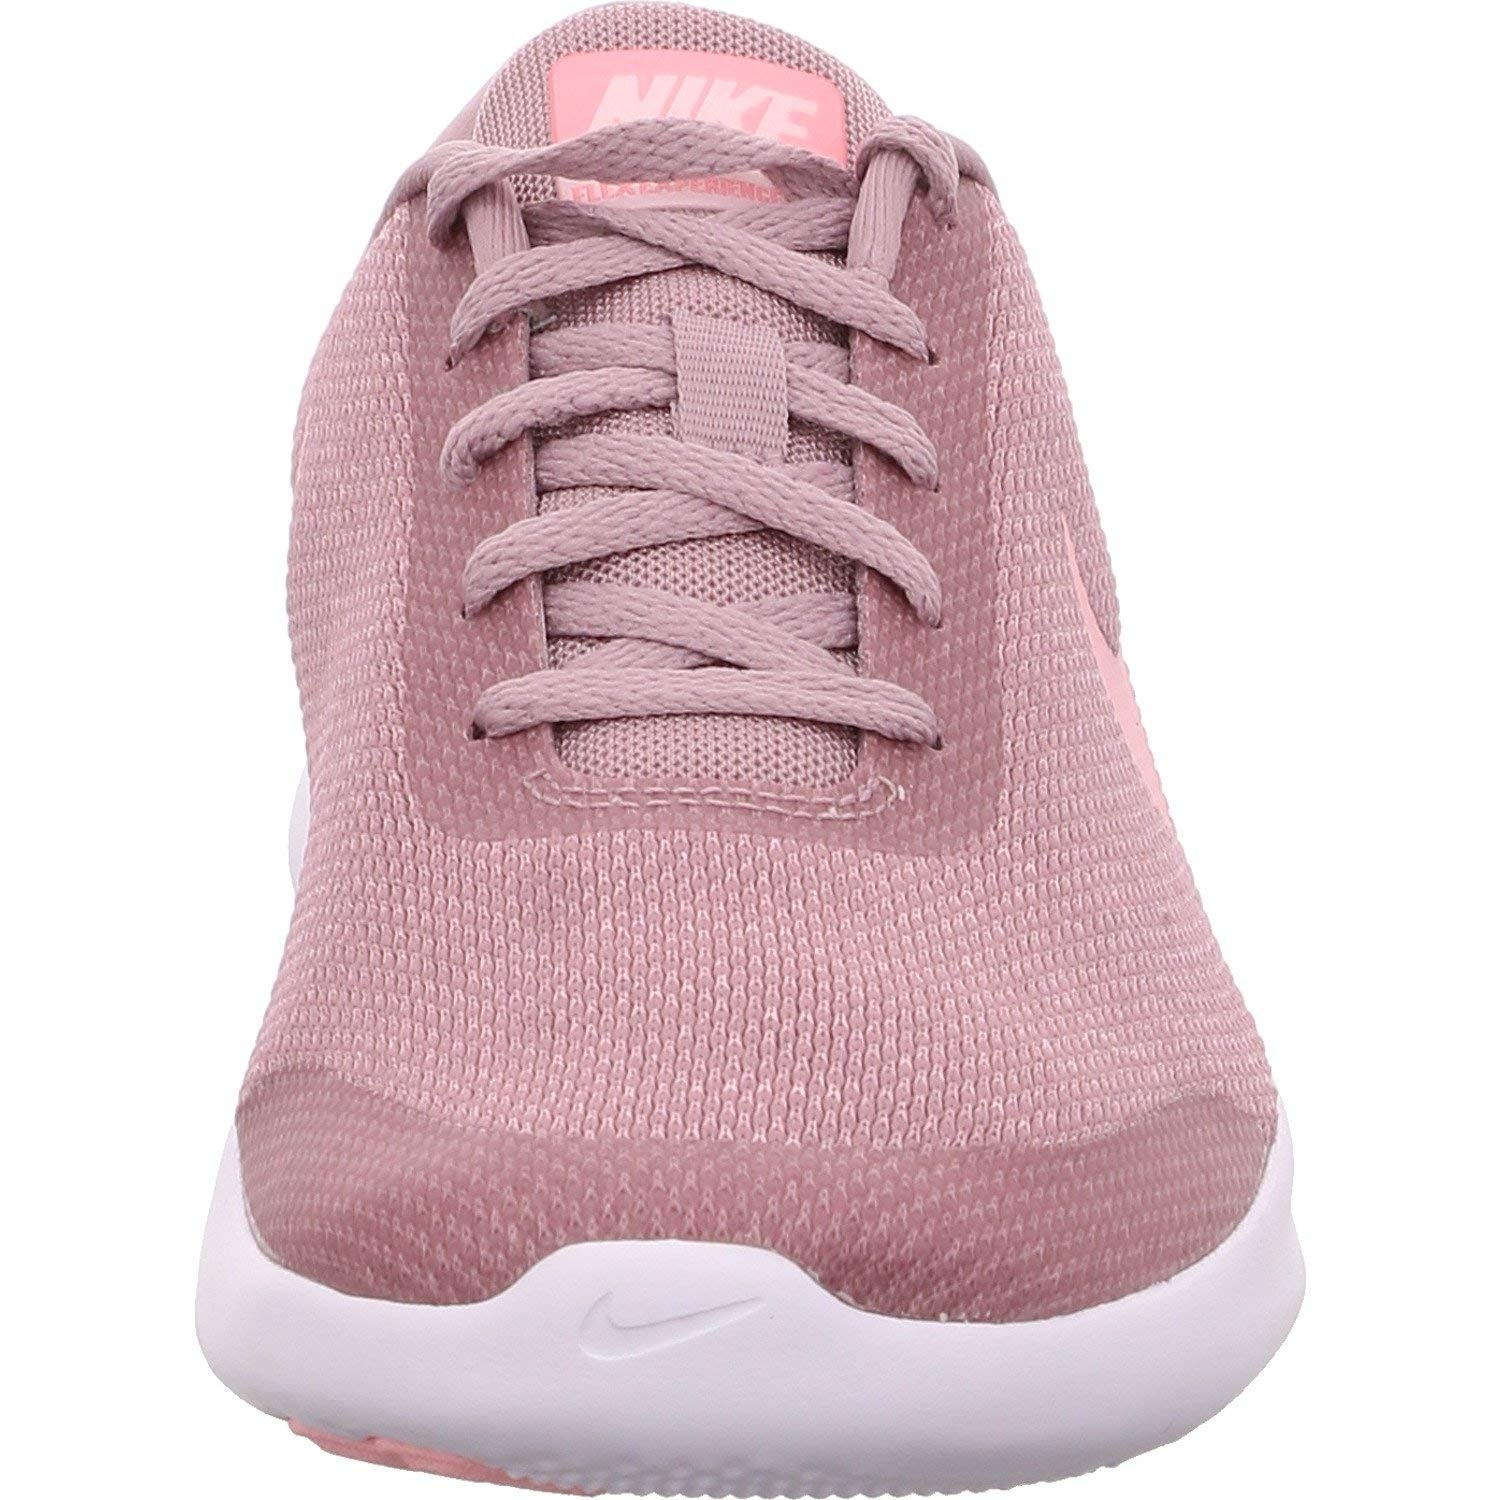 d0031ef3167c Shop Nike Womens Wmns Flex Experience Rn 7 Rose Arctic Punch Sunset Pulse  Size 6.5 - Free Shipping Today - Overstock - 25596616